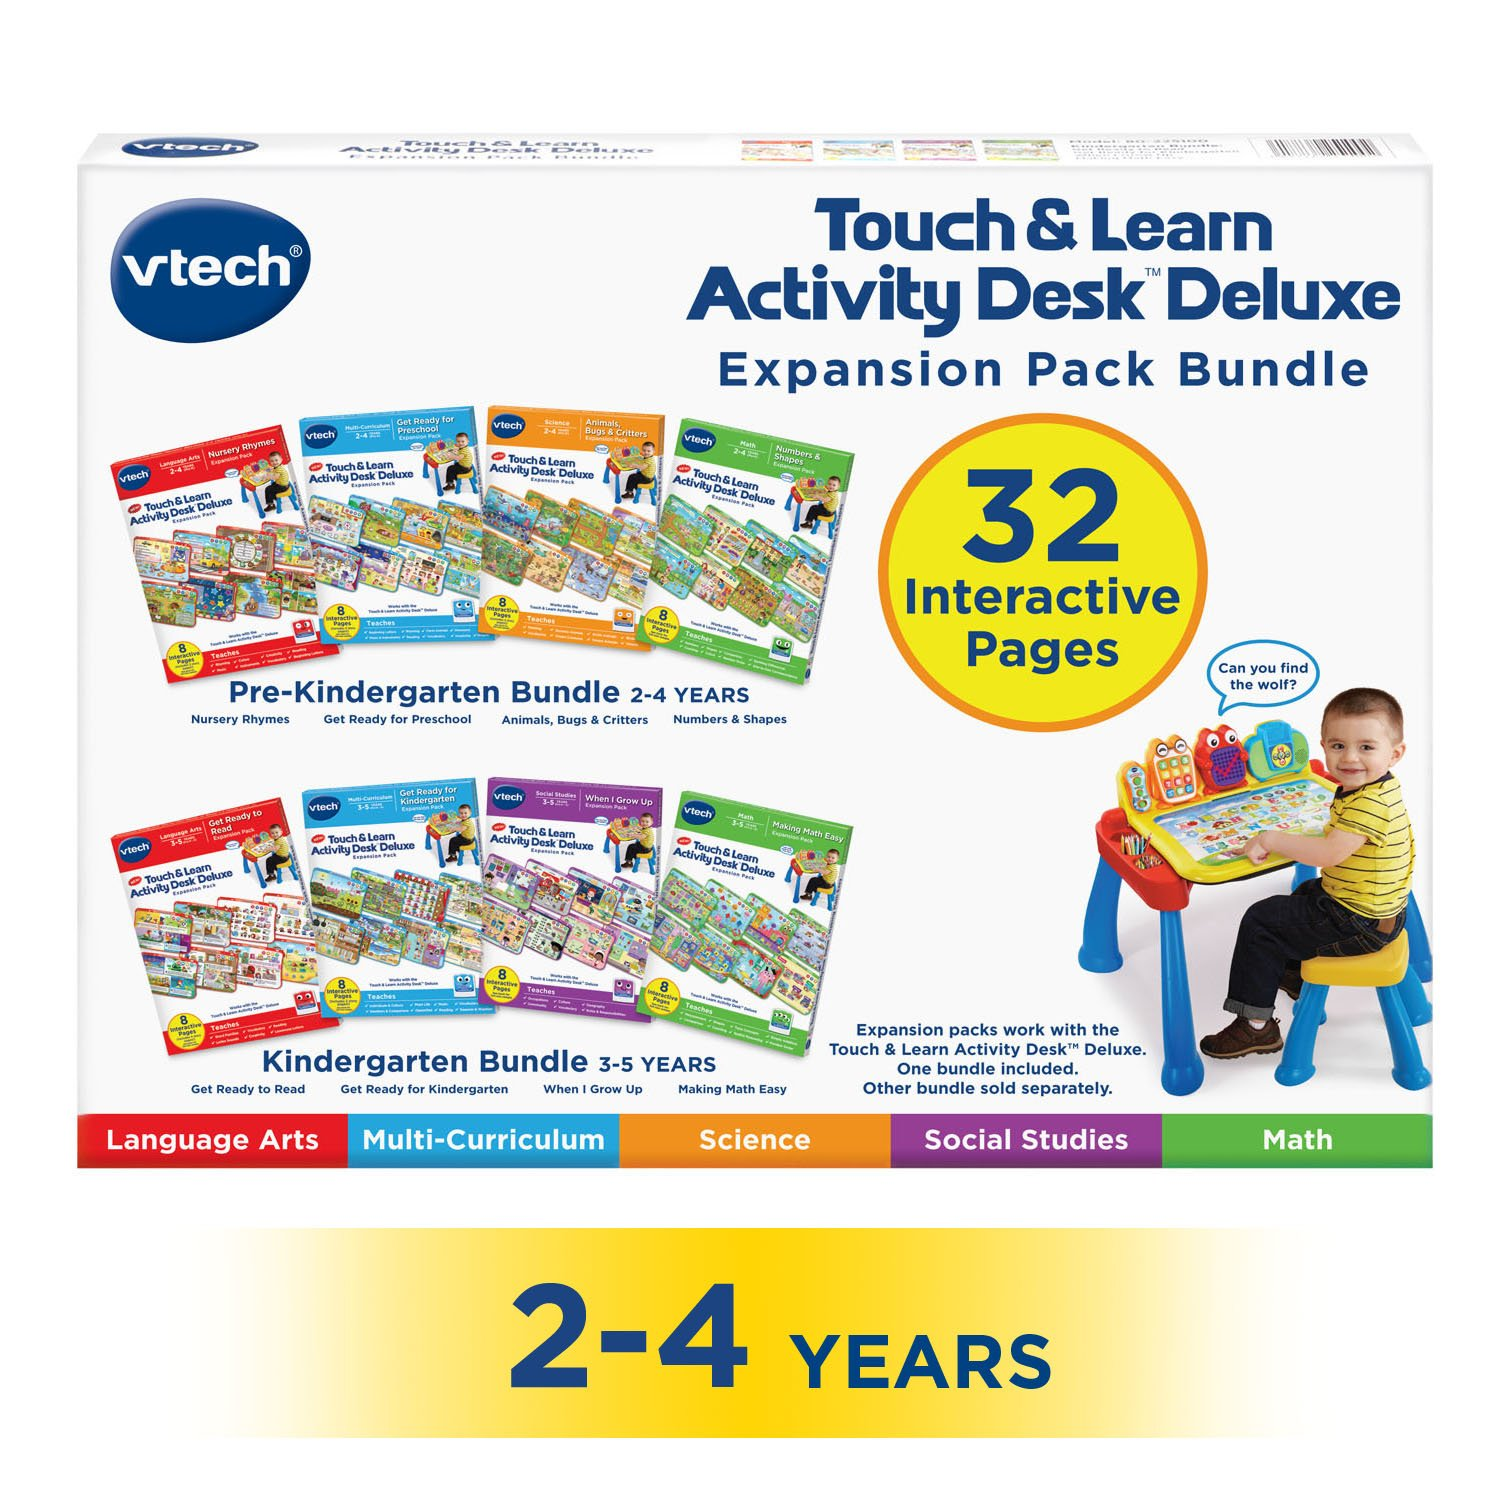 VTech Touch & Learn Activity Desk Deluxe 4-in-1 Preschool Bundle Expansion Pack I for Age 2-4 80-225000